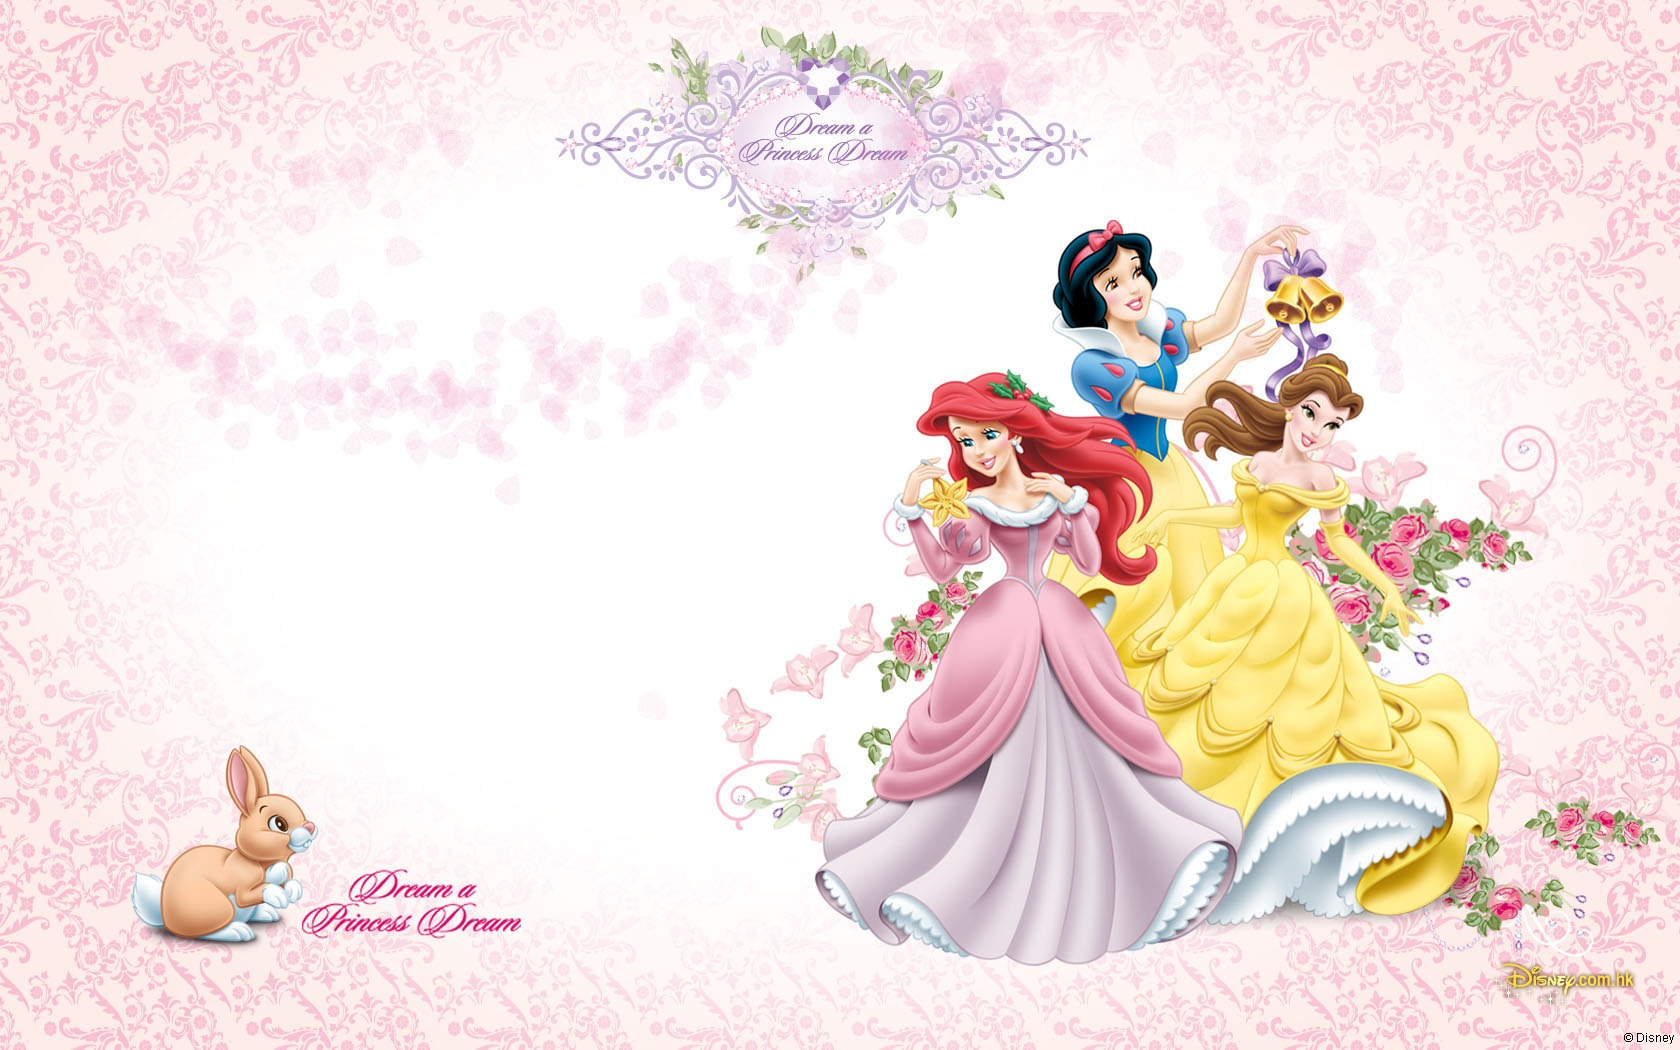 Disney Princess images Disney Princess wallpaper photos 33693784 1680x1050